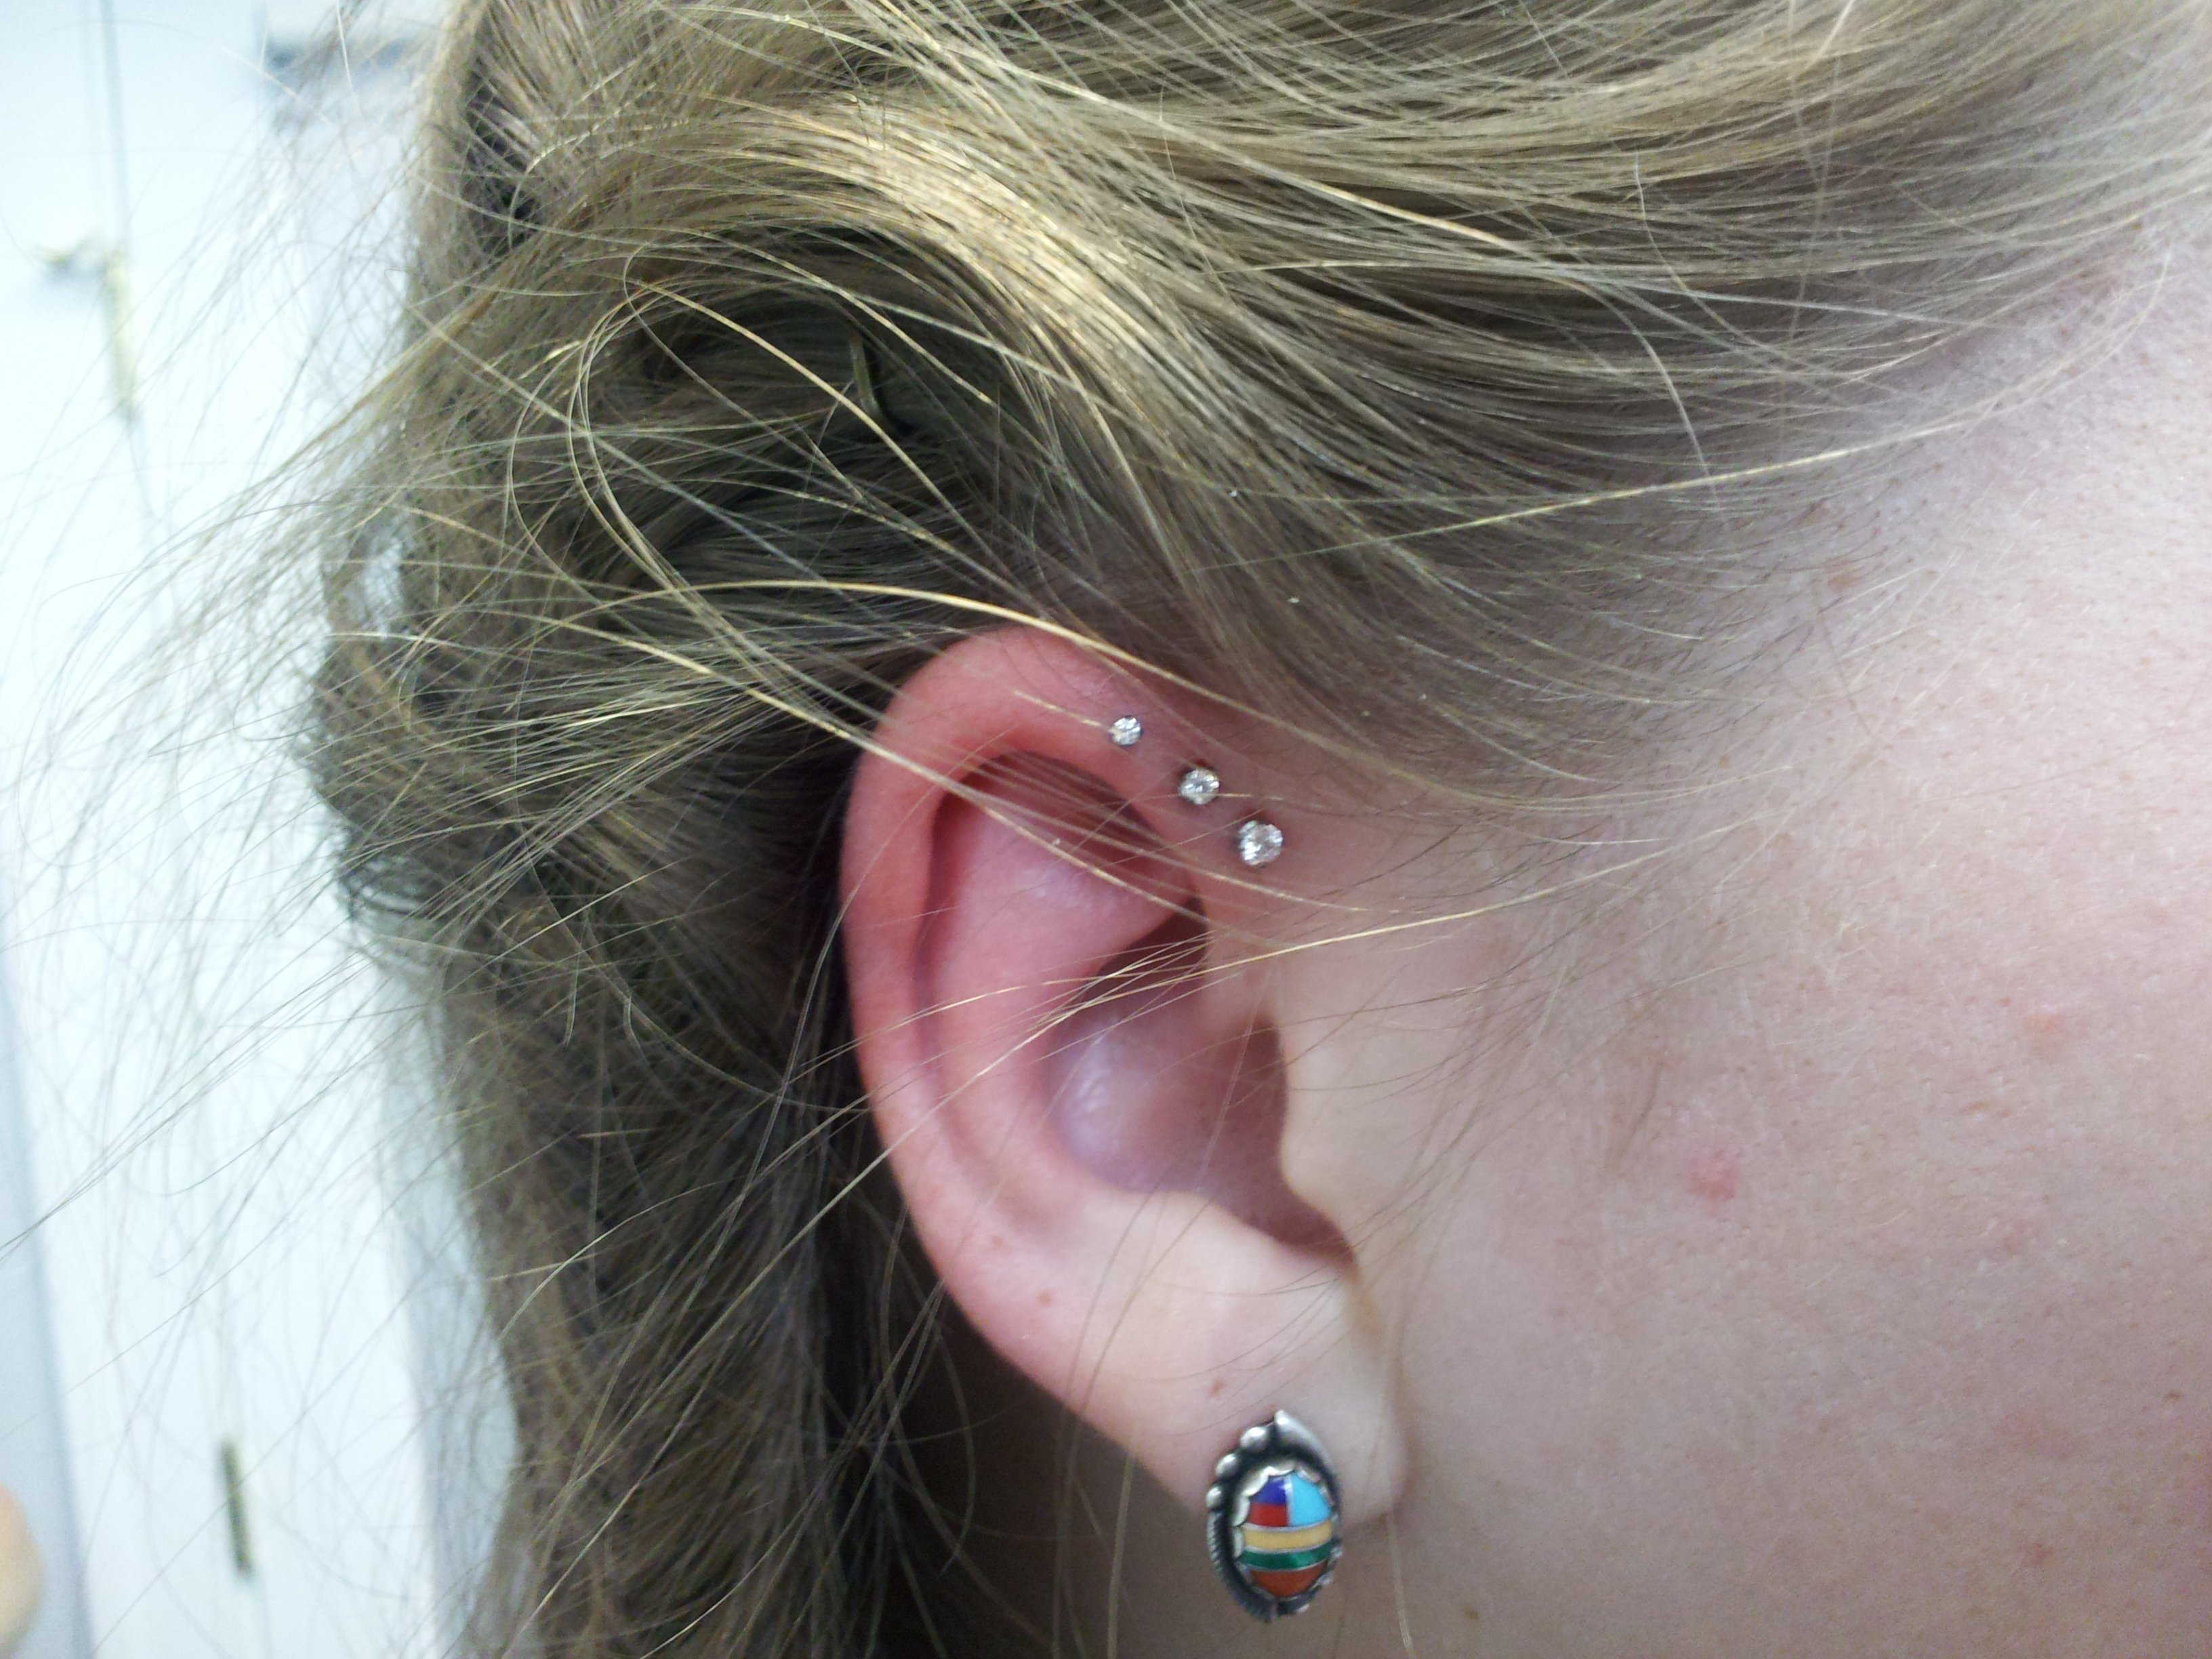 forward,helix,piercing,jewelry,i2